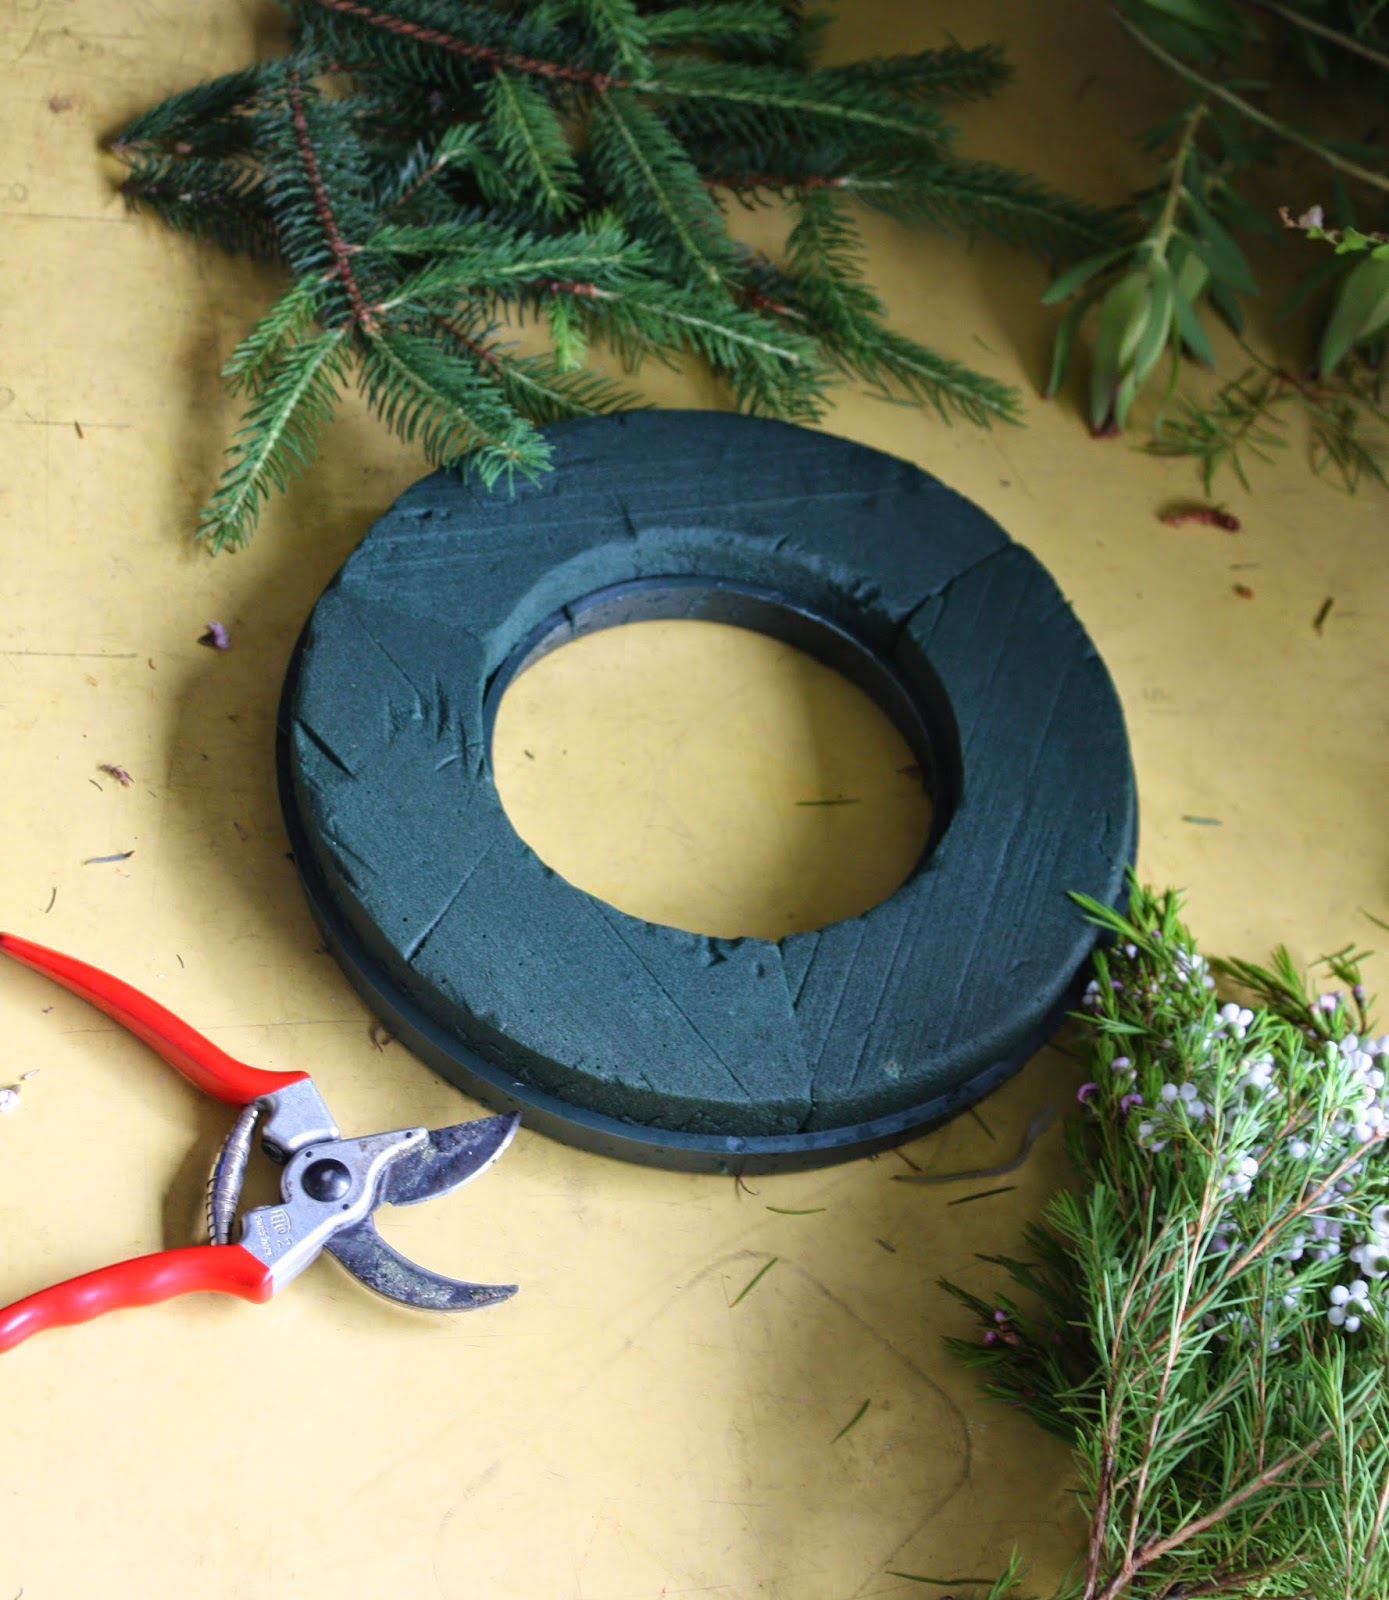 How to make a fresh christmas wreath - For This Simple Fresh Wreath I Start With A 12 Floral Foam Wreath They Are Available From Floral Supplies Stores Usually Under 10